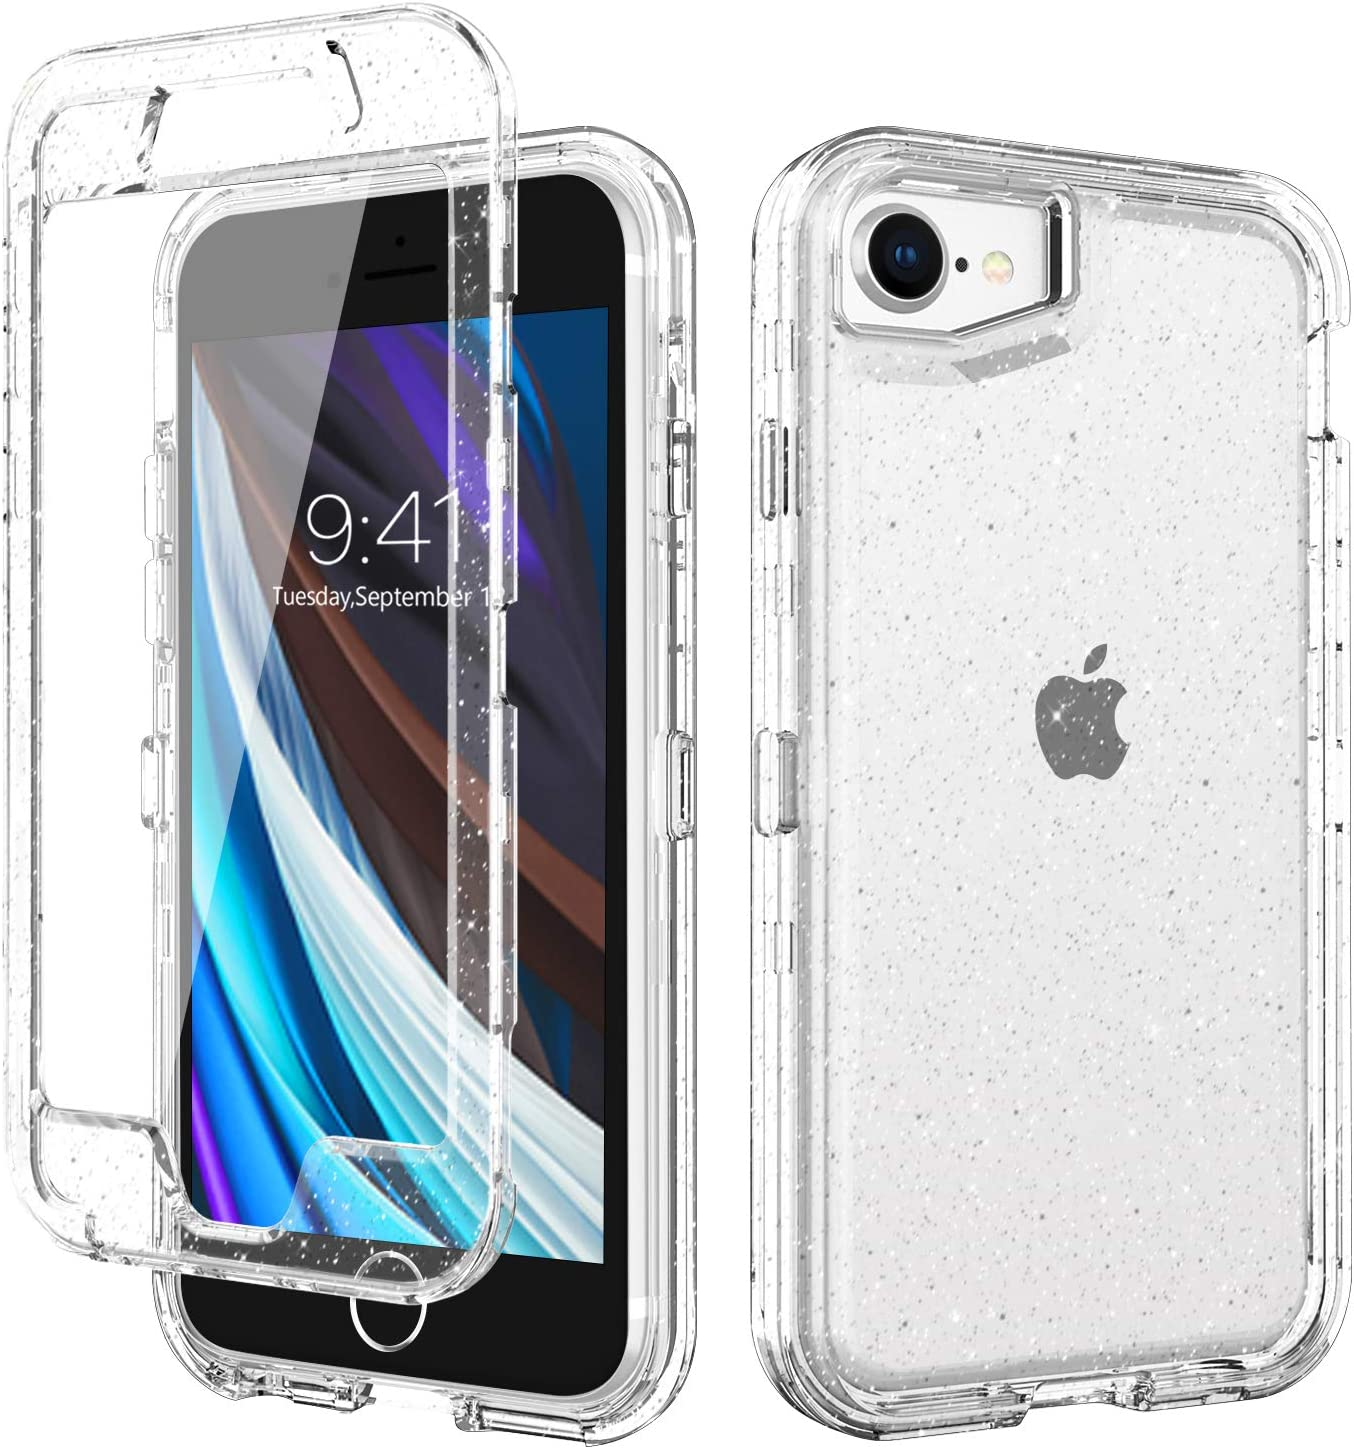 BENTOBEN Case for iPhone SE 2020 / iPhone 8 / iPhone 7 / iPhone 6S / iPhone 6 4.7 inch, Transparent Clear Heavy Duty Rugged 3 in 1 Hard PC Soft TPU Bumper Protective Case, Silver Glitter Crystal Clear